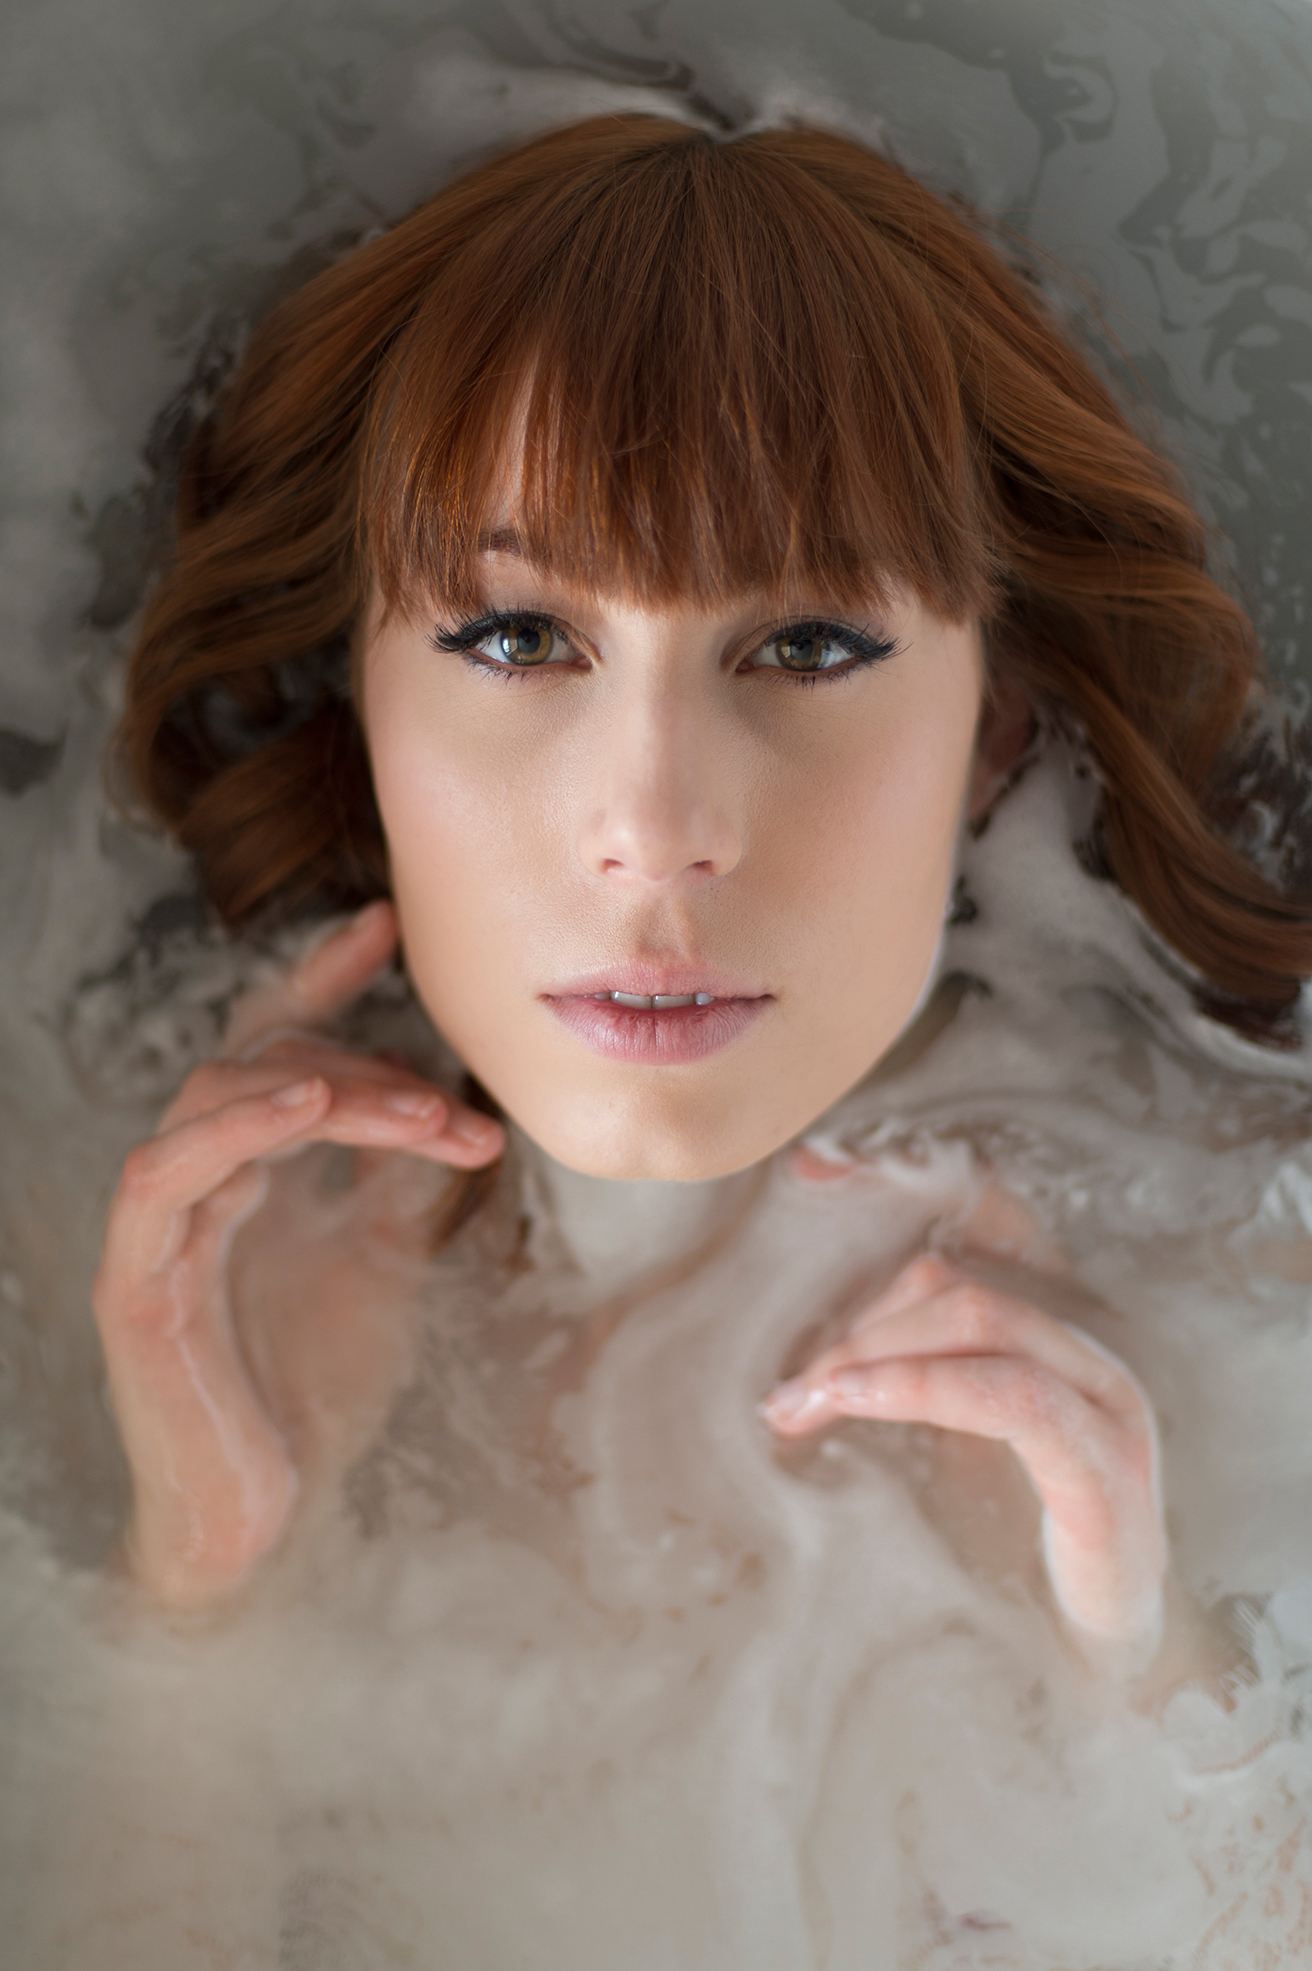 Boudoir photography in bathtub